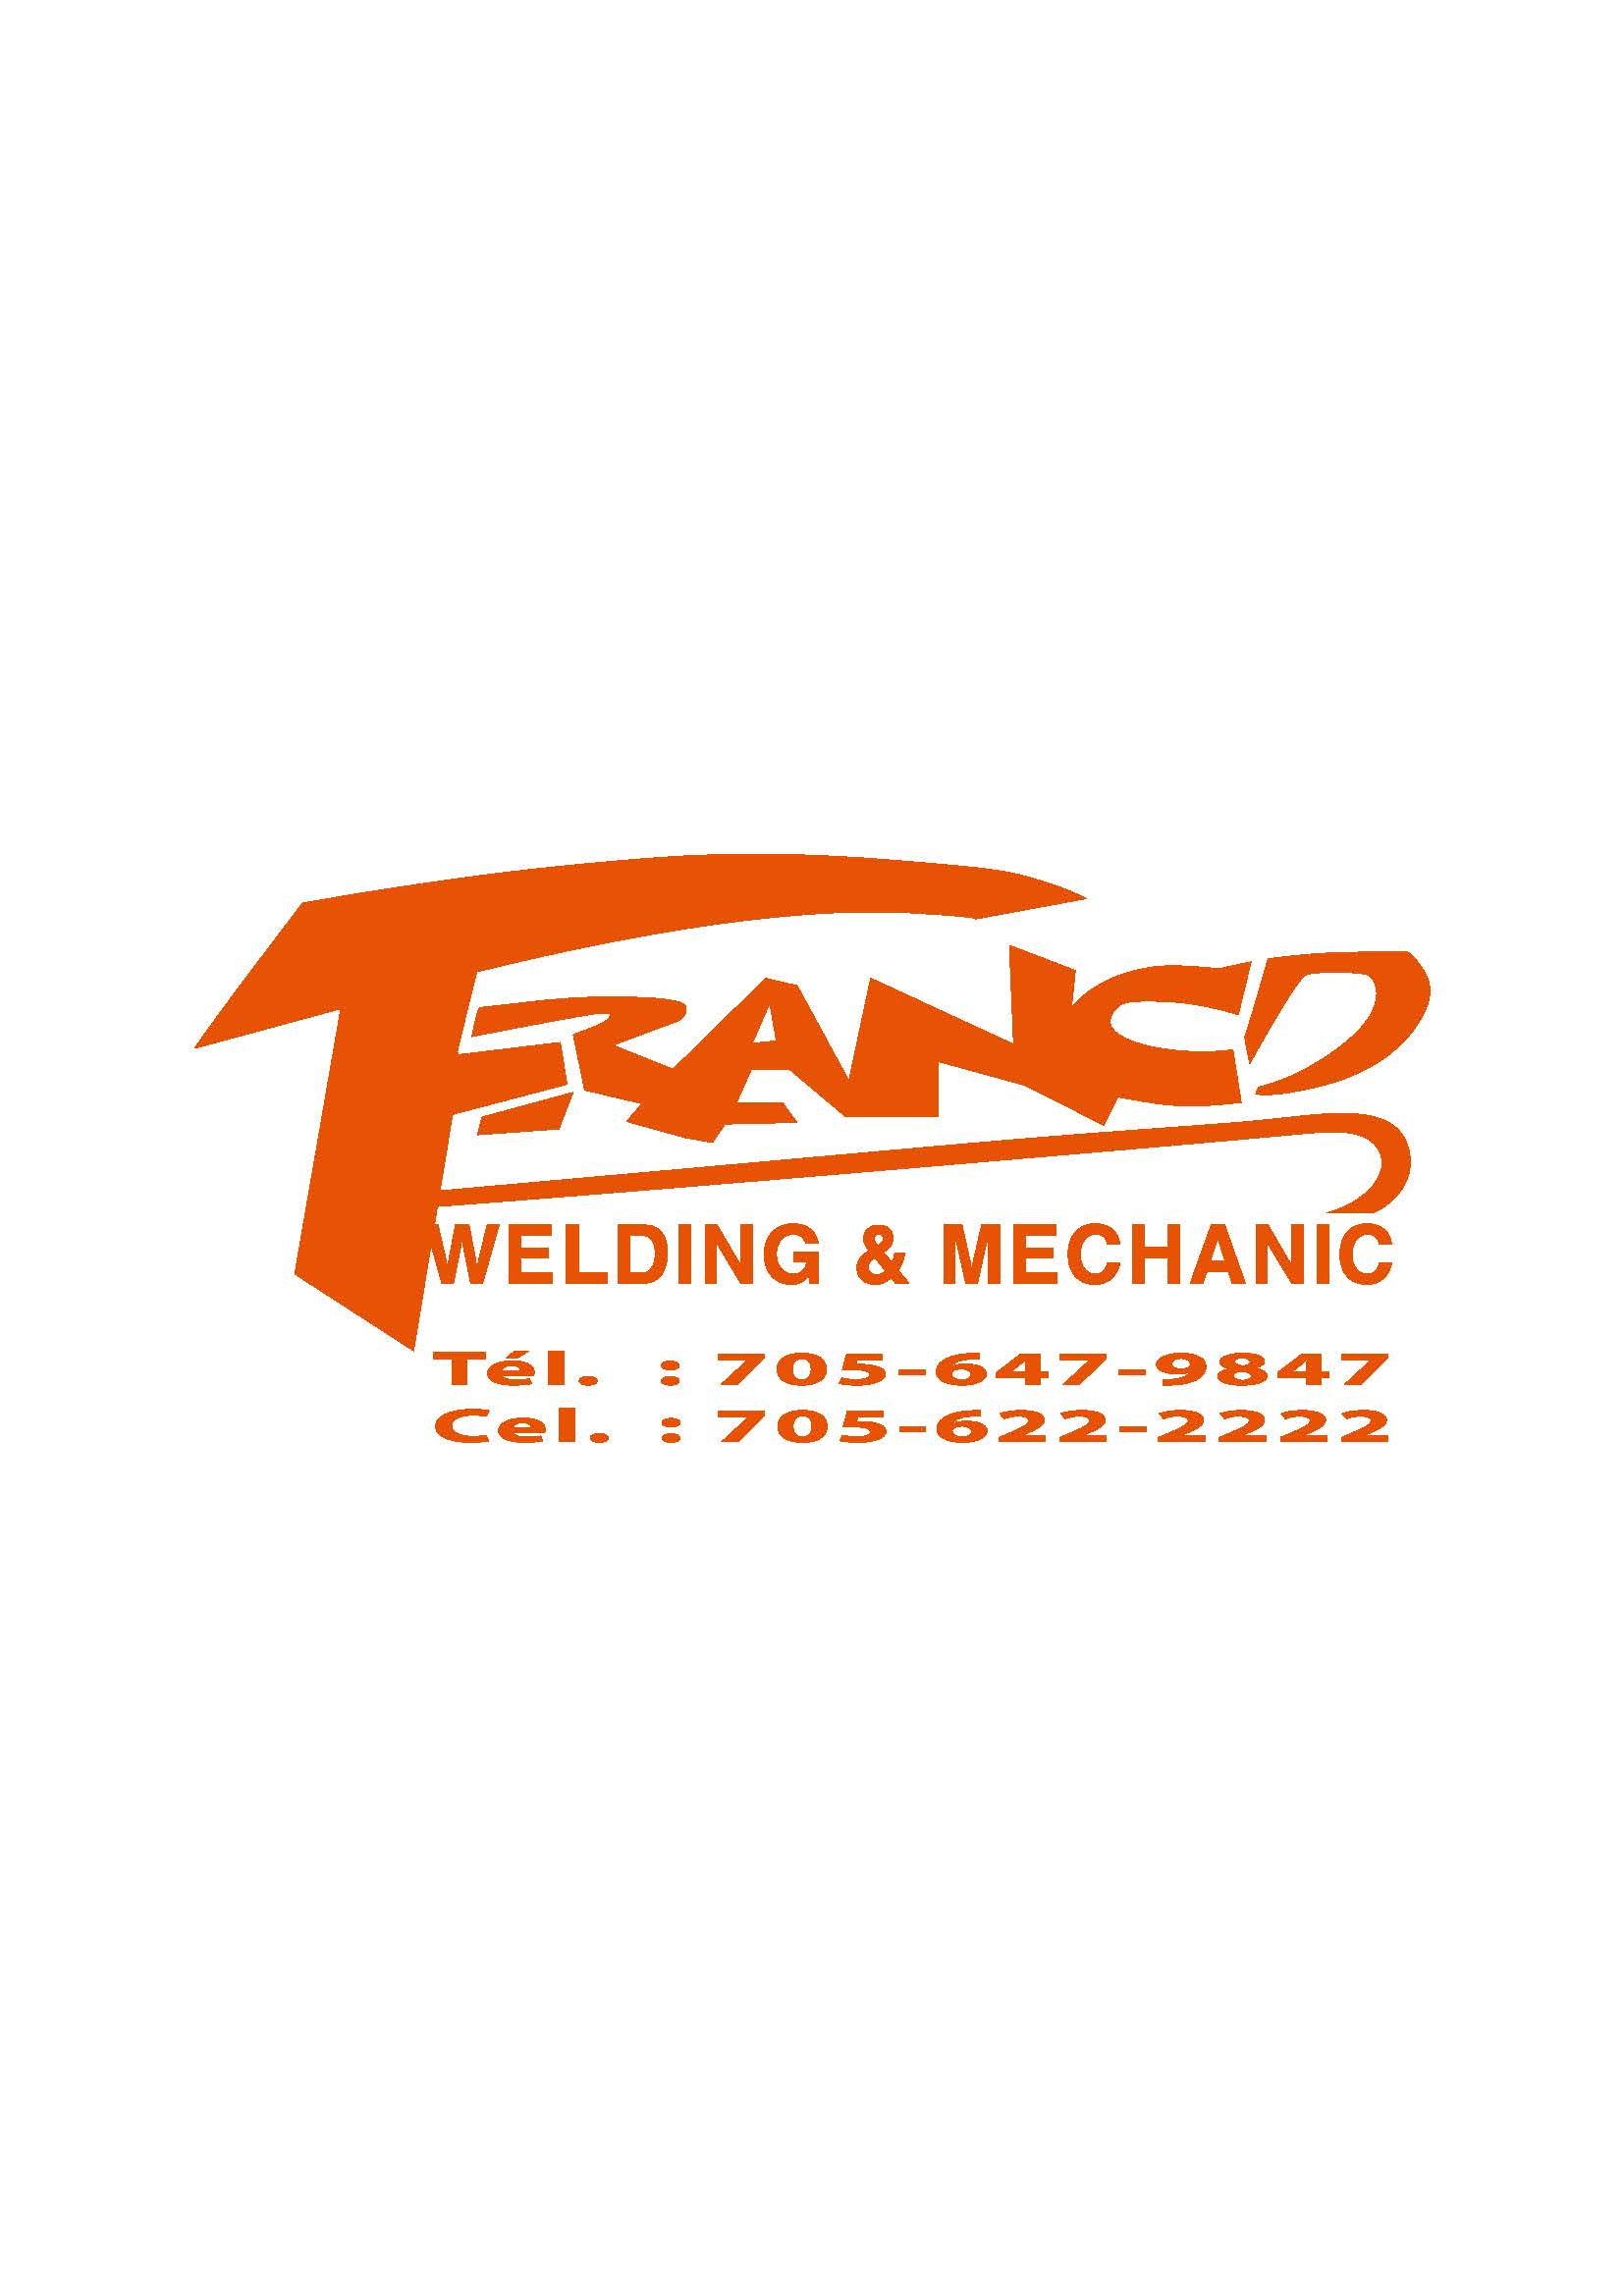 Franco Welding & Mechanic